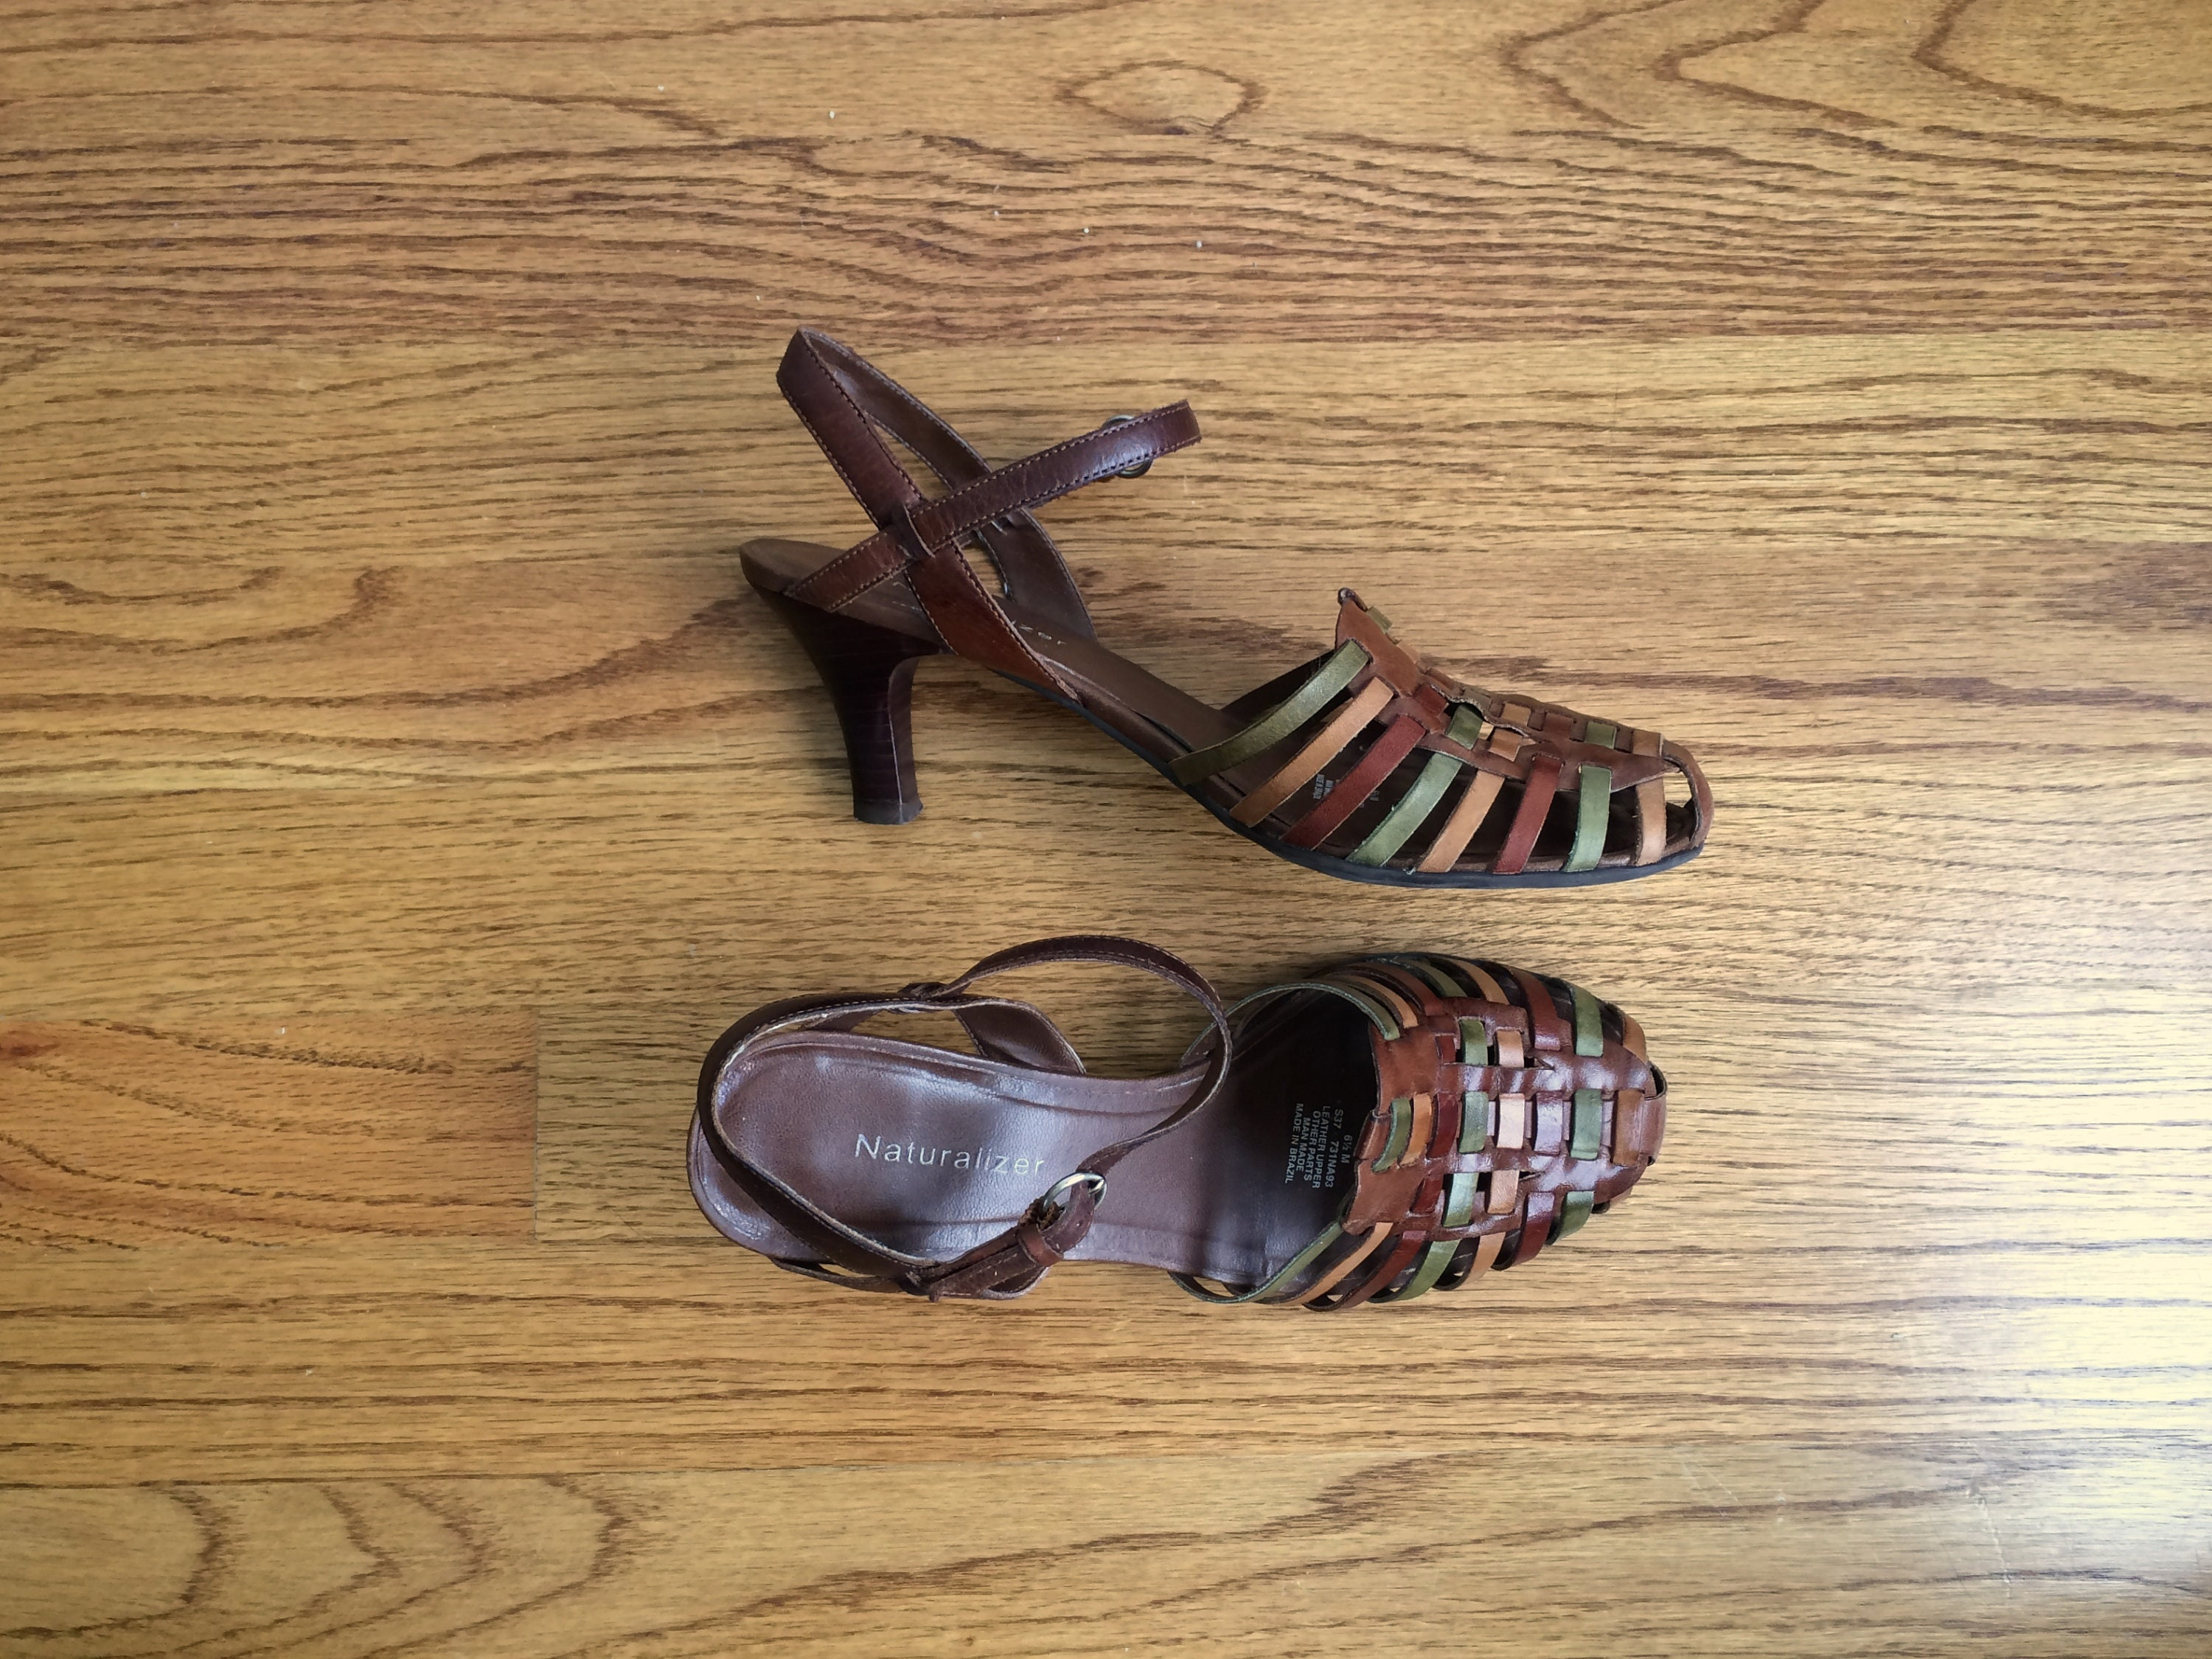 b503d57cfe77 Huarache sandal heels   brown leather strappy sandals   6.5